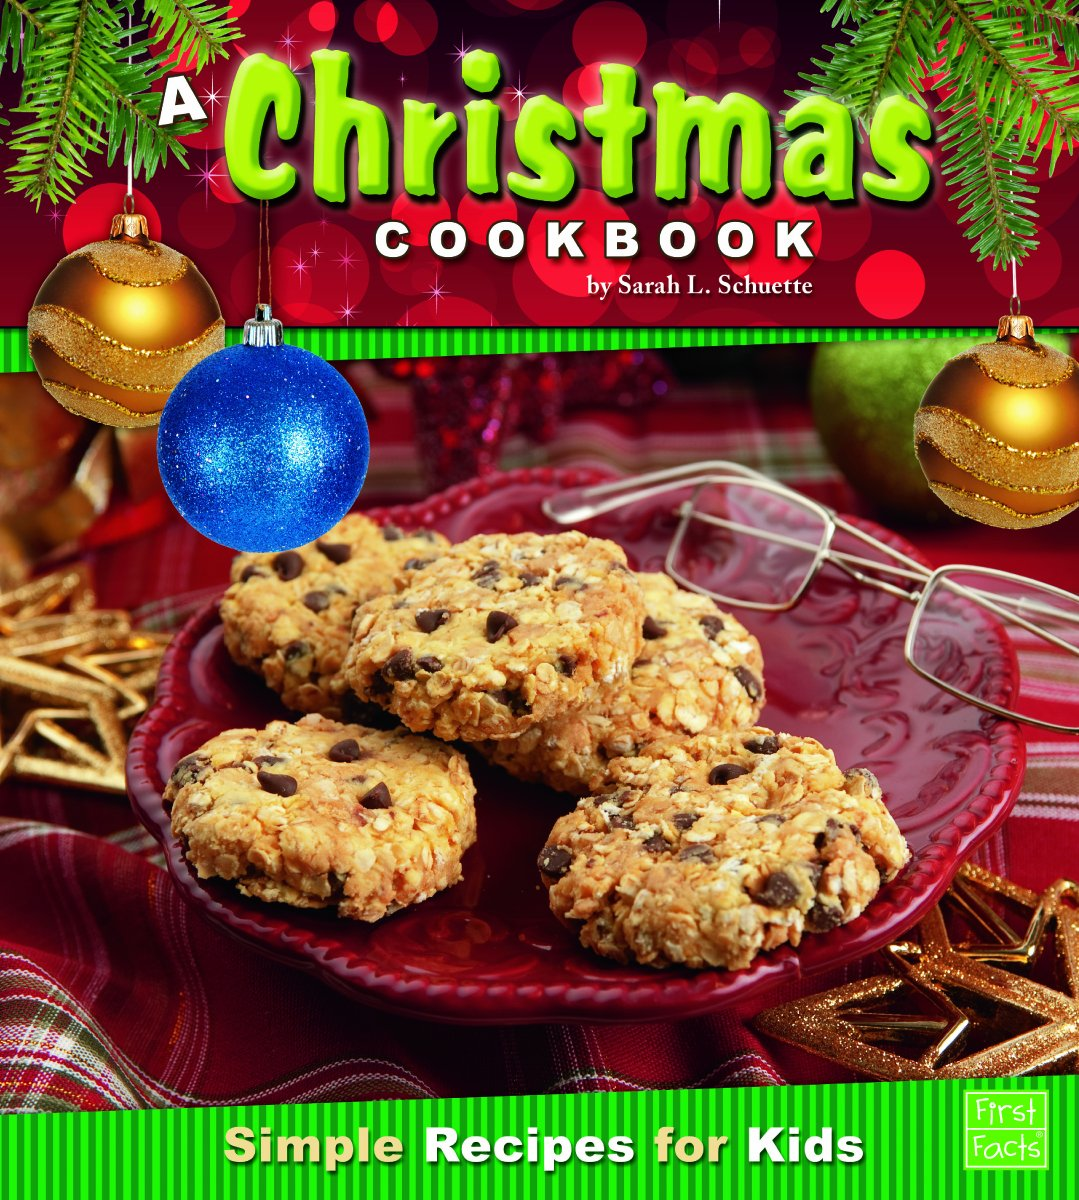 A Christmas Cookbook: Simple Recipes for Kids (First Cookbooks) pdf